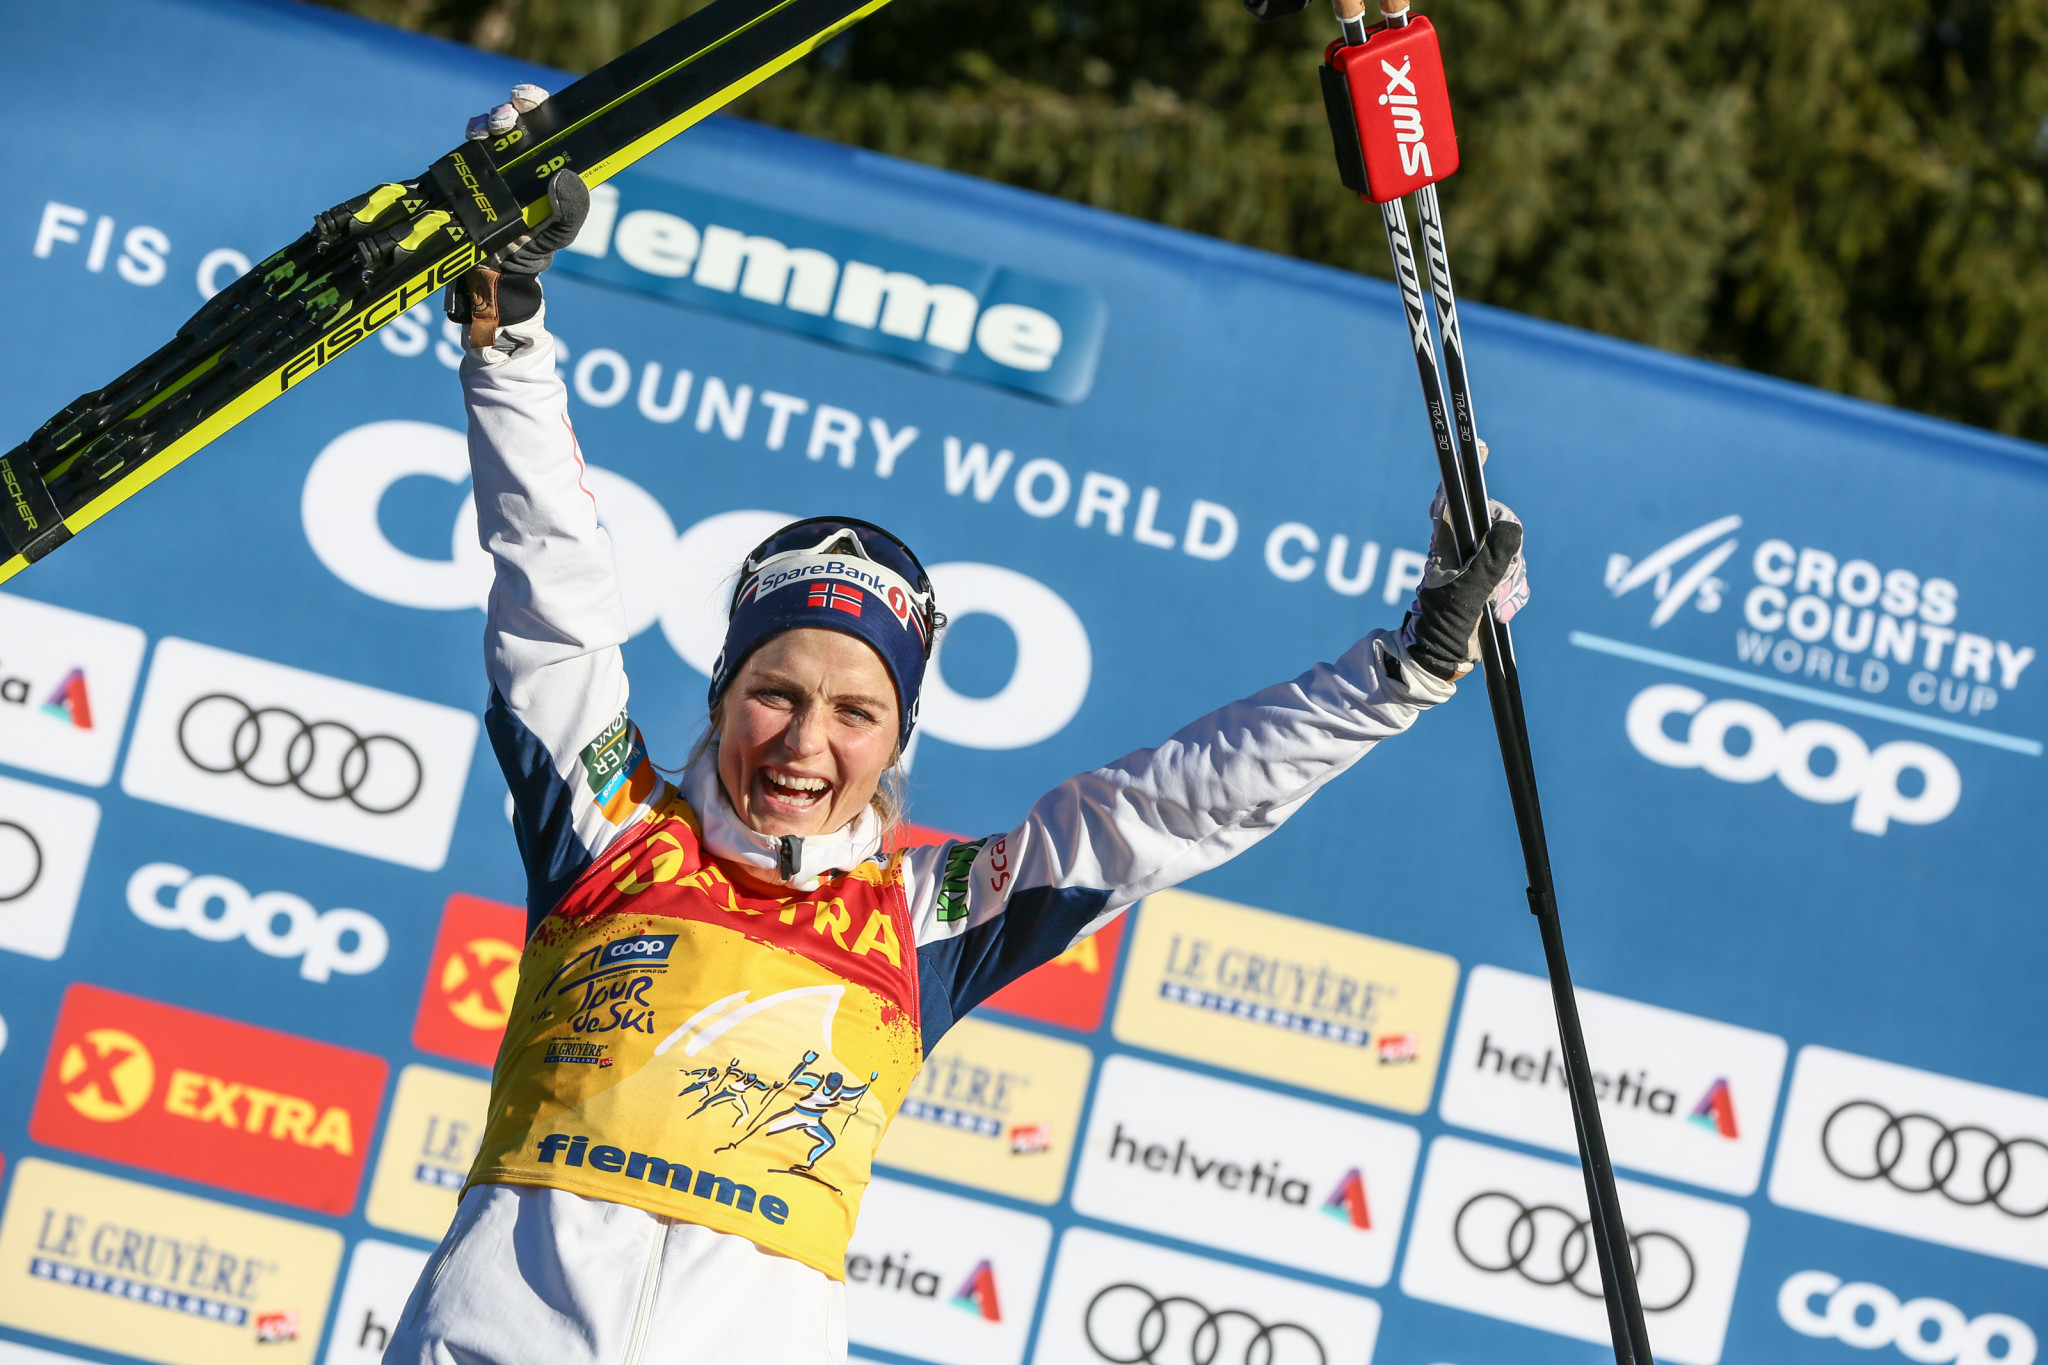 The pride of Norway, Therese Johaug has a significant lead in the women's standings ©Getty Images